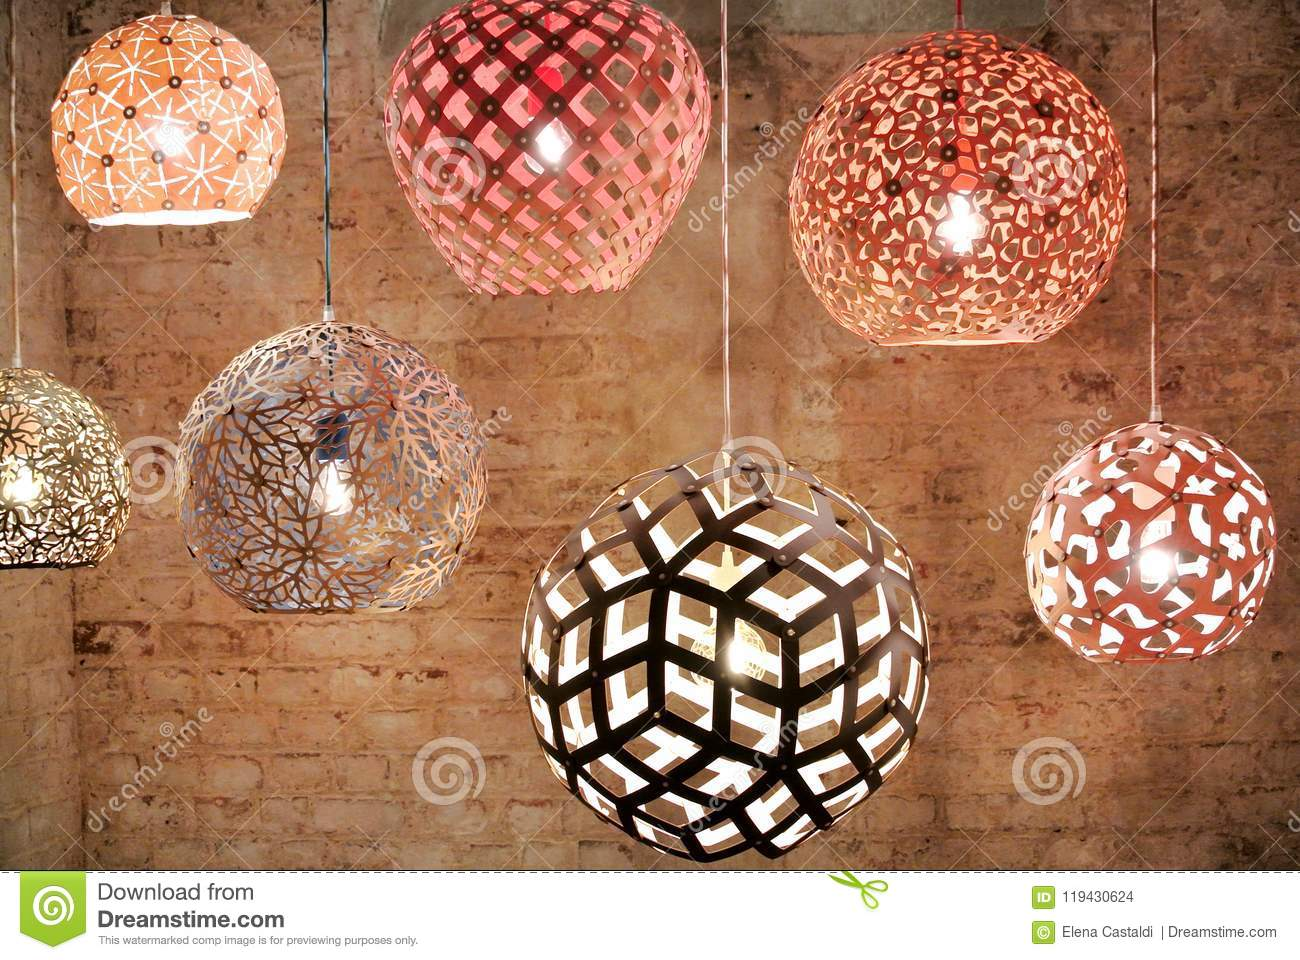 The ceiling lamps